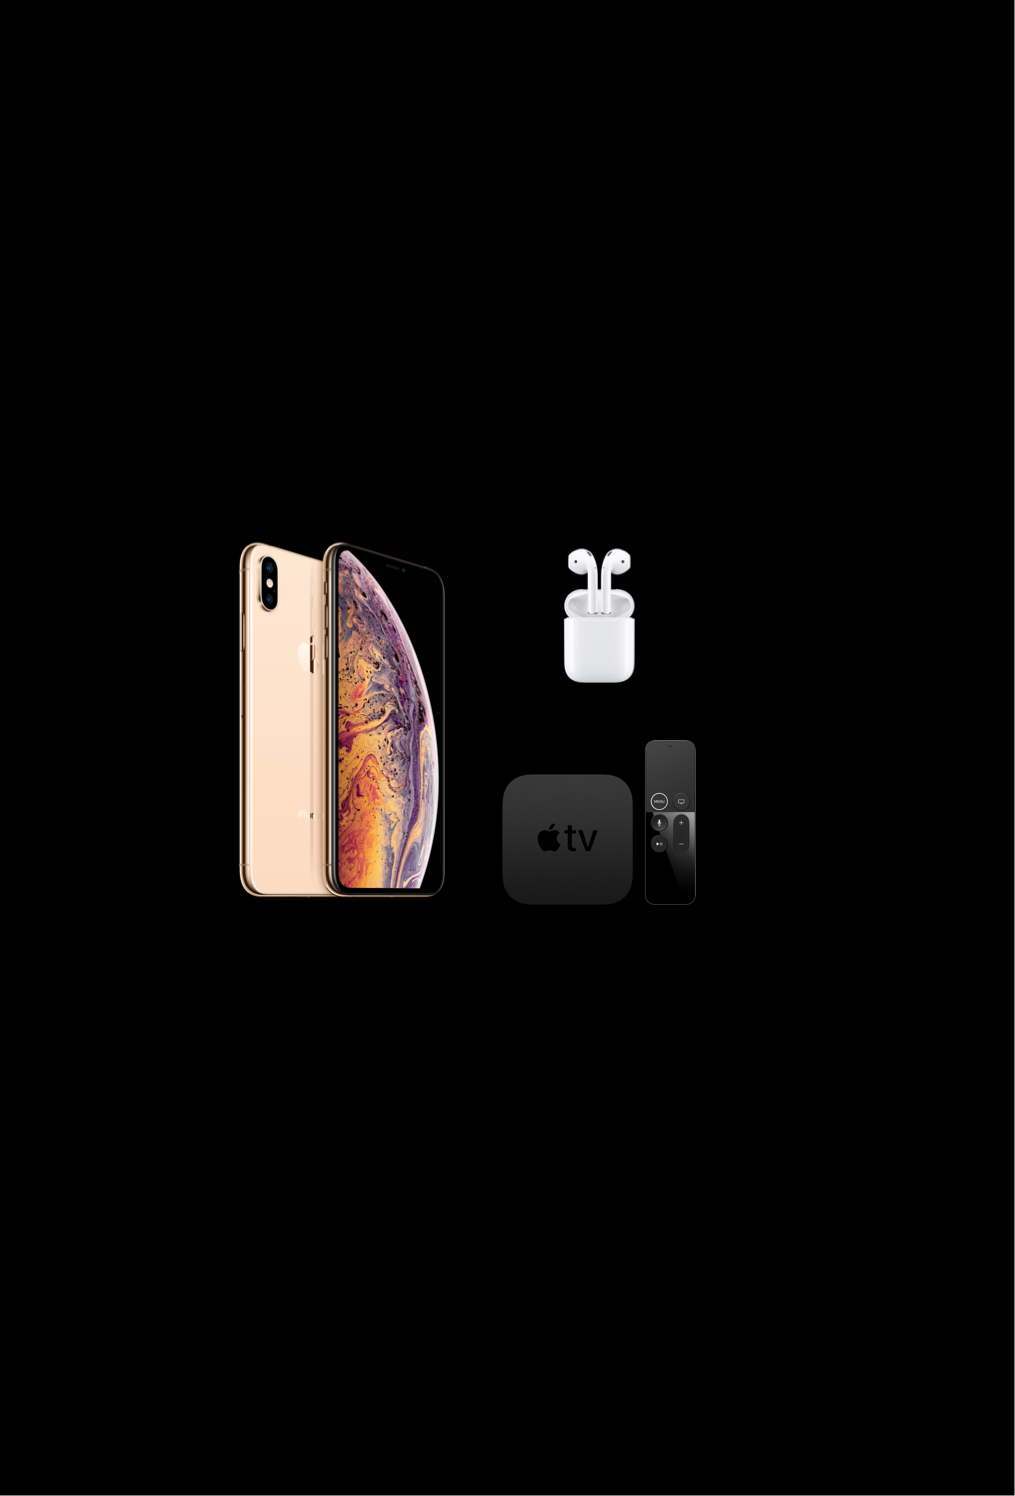 online contests, sweepstakes and giveaways - iPhone XS + AirPods + Apple TV 4K Giveaway